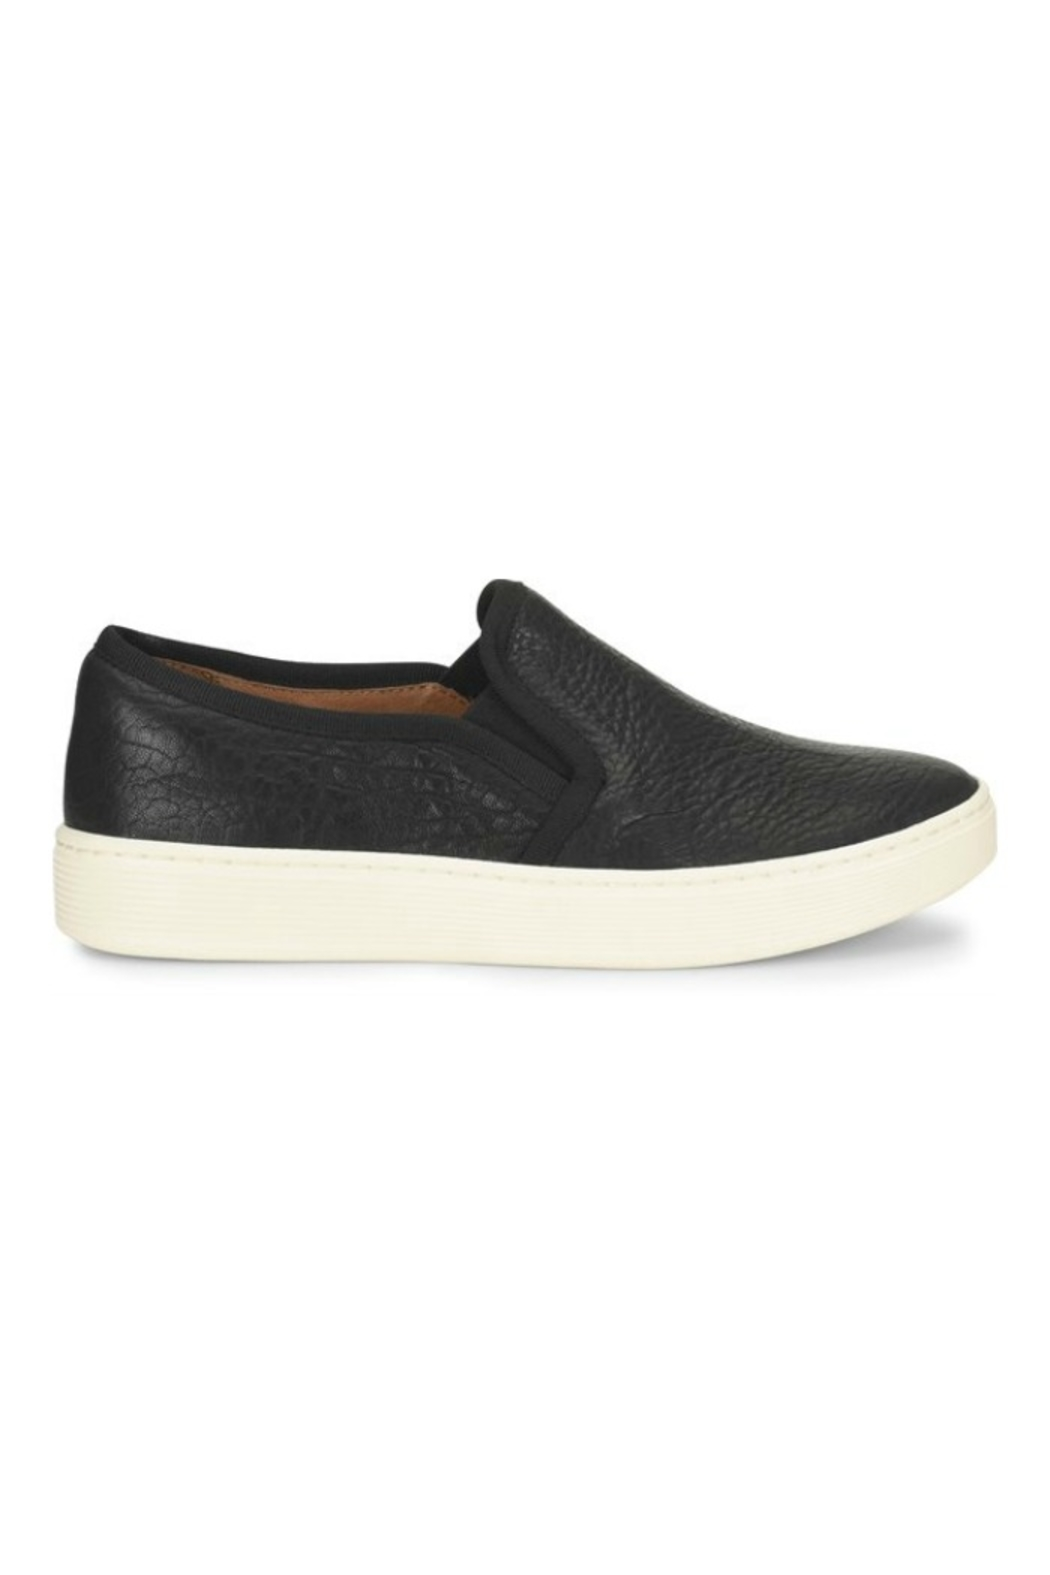 Sofft Somers Slip On - Main Image